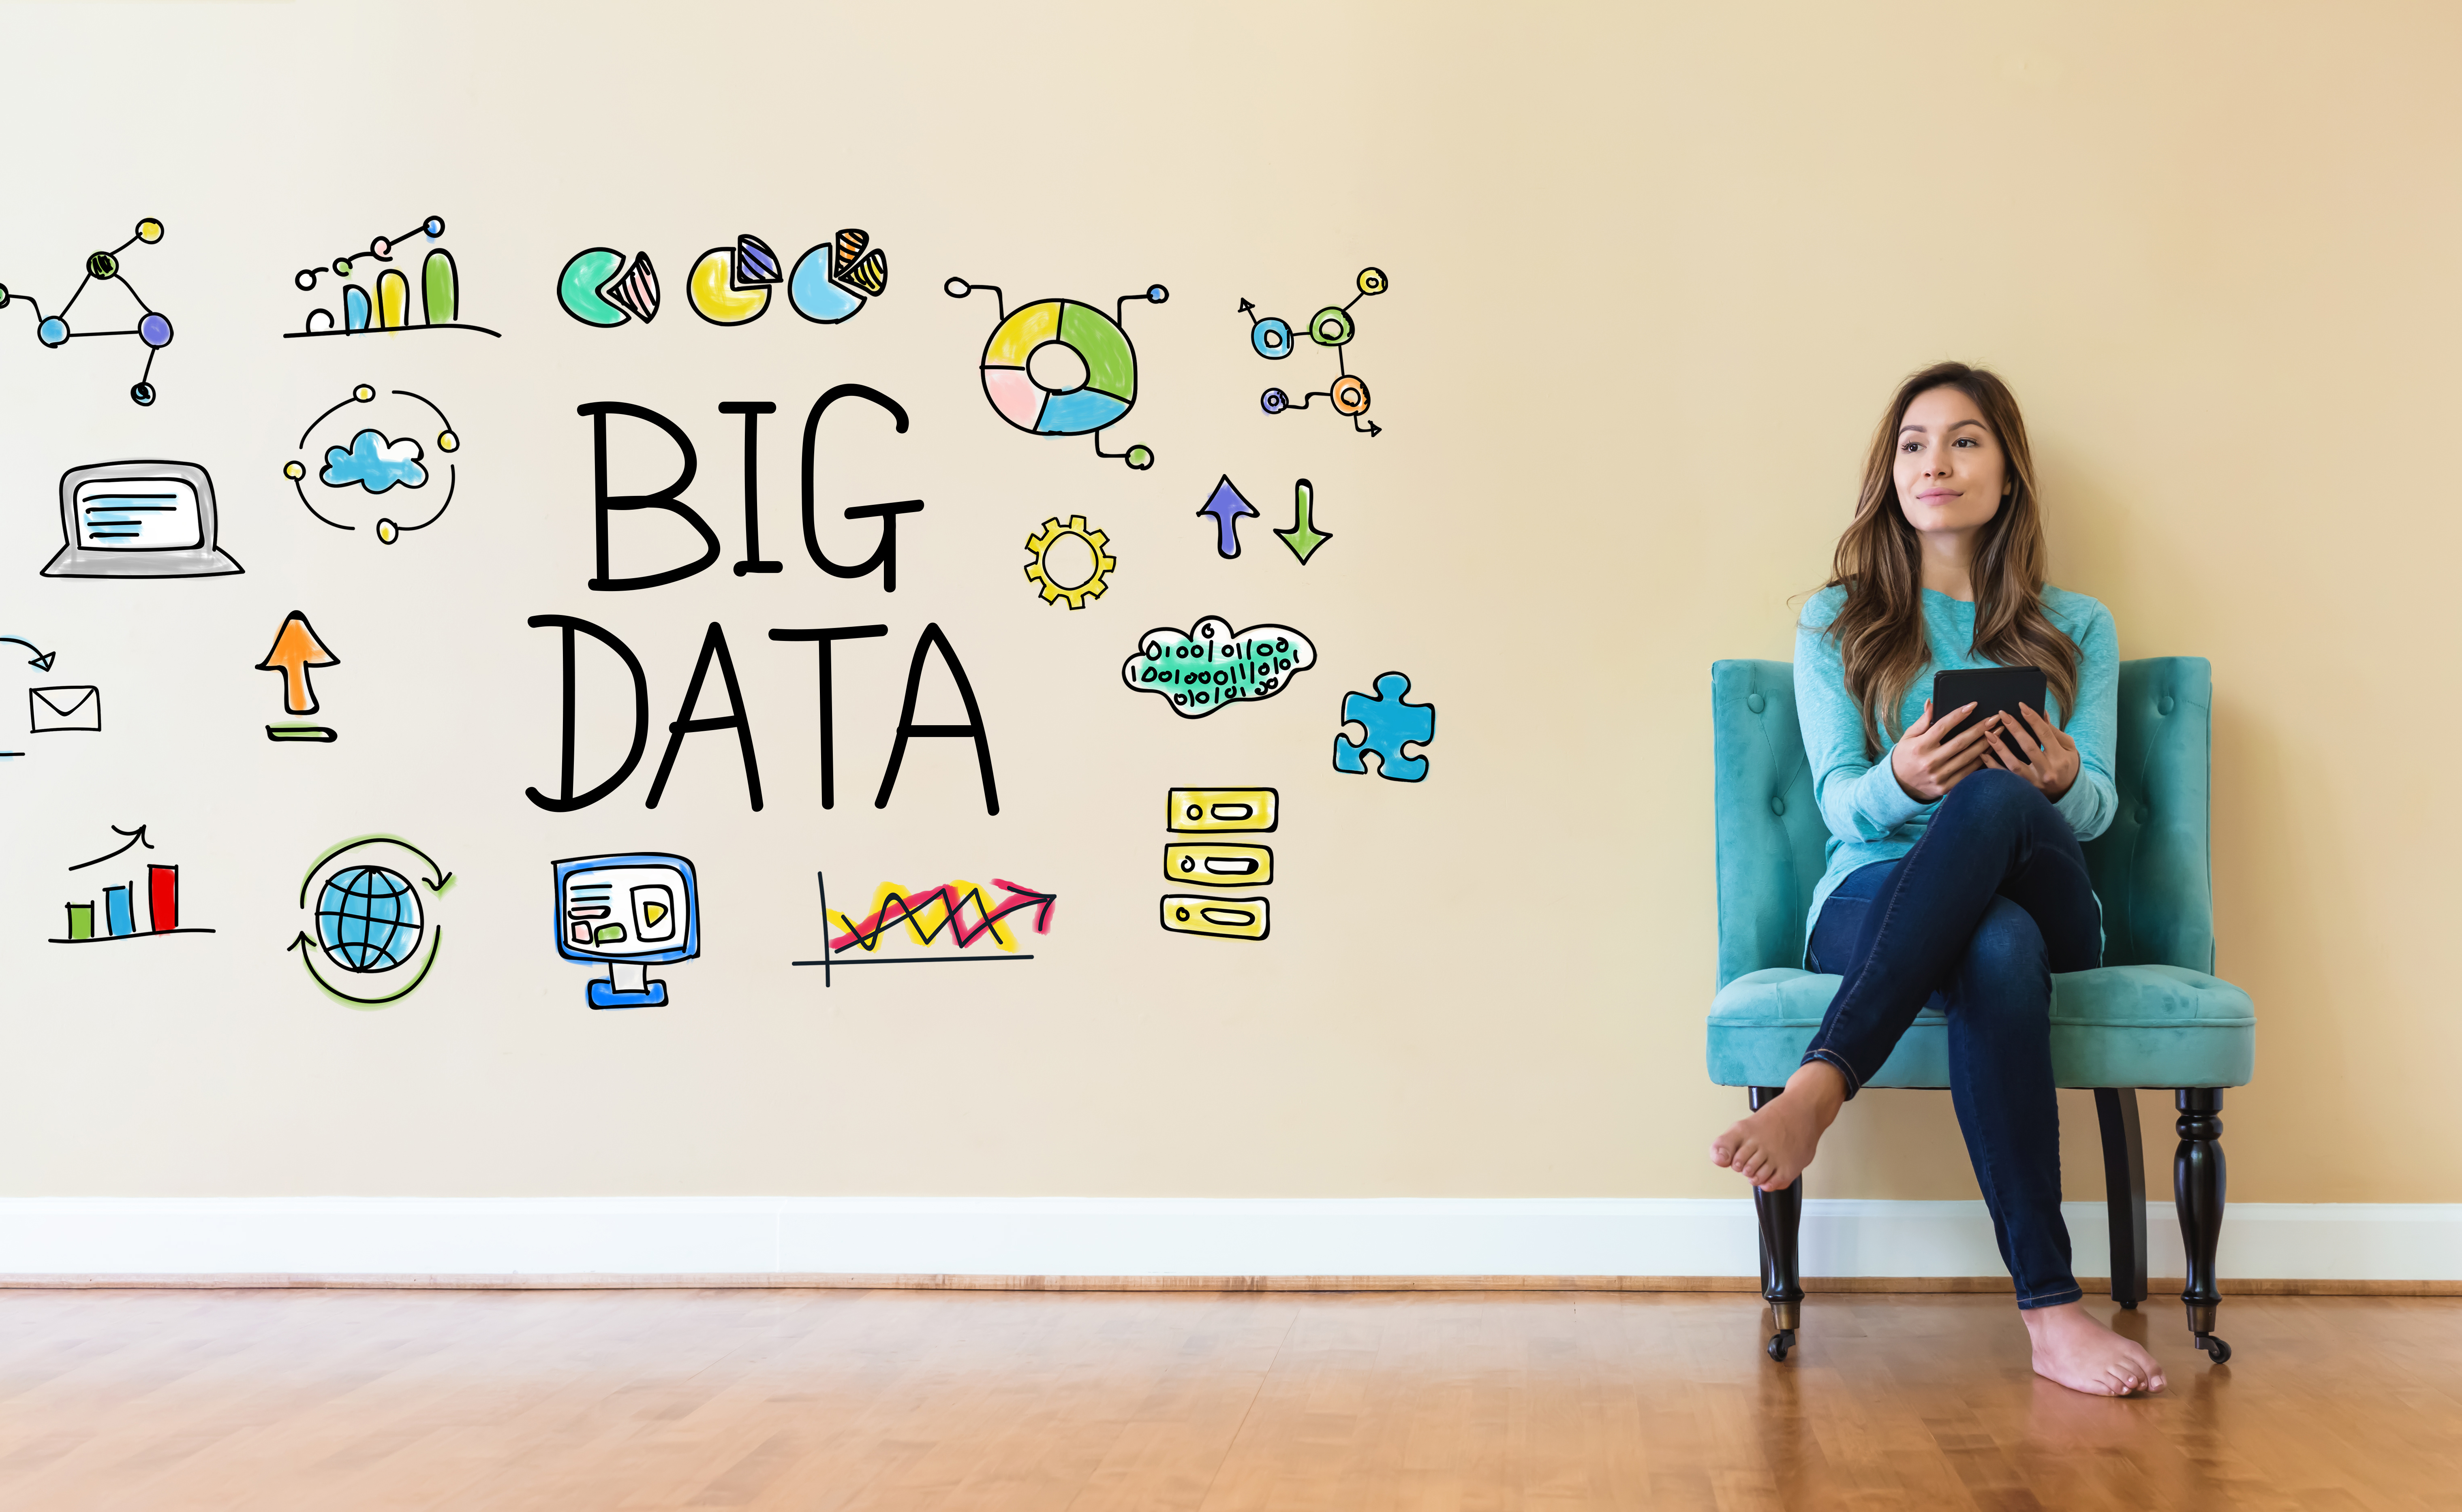 Big Data text with young woman holding a tablet computer in a chair